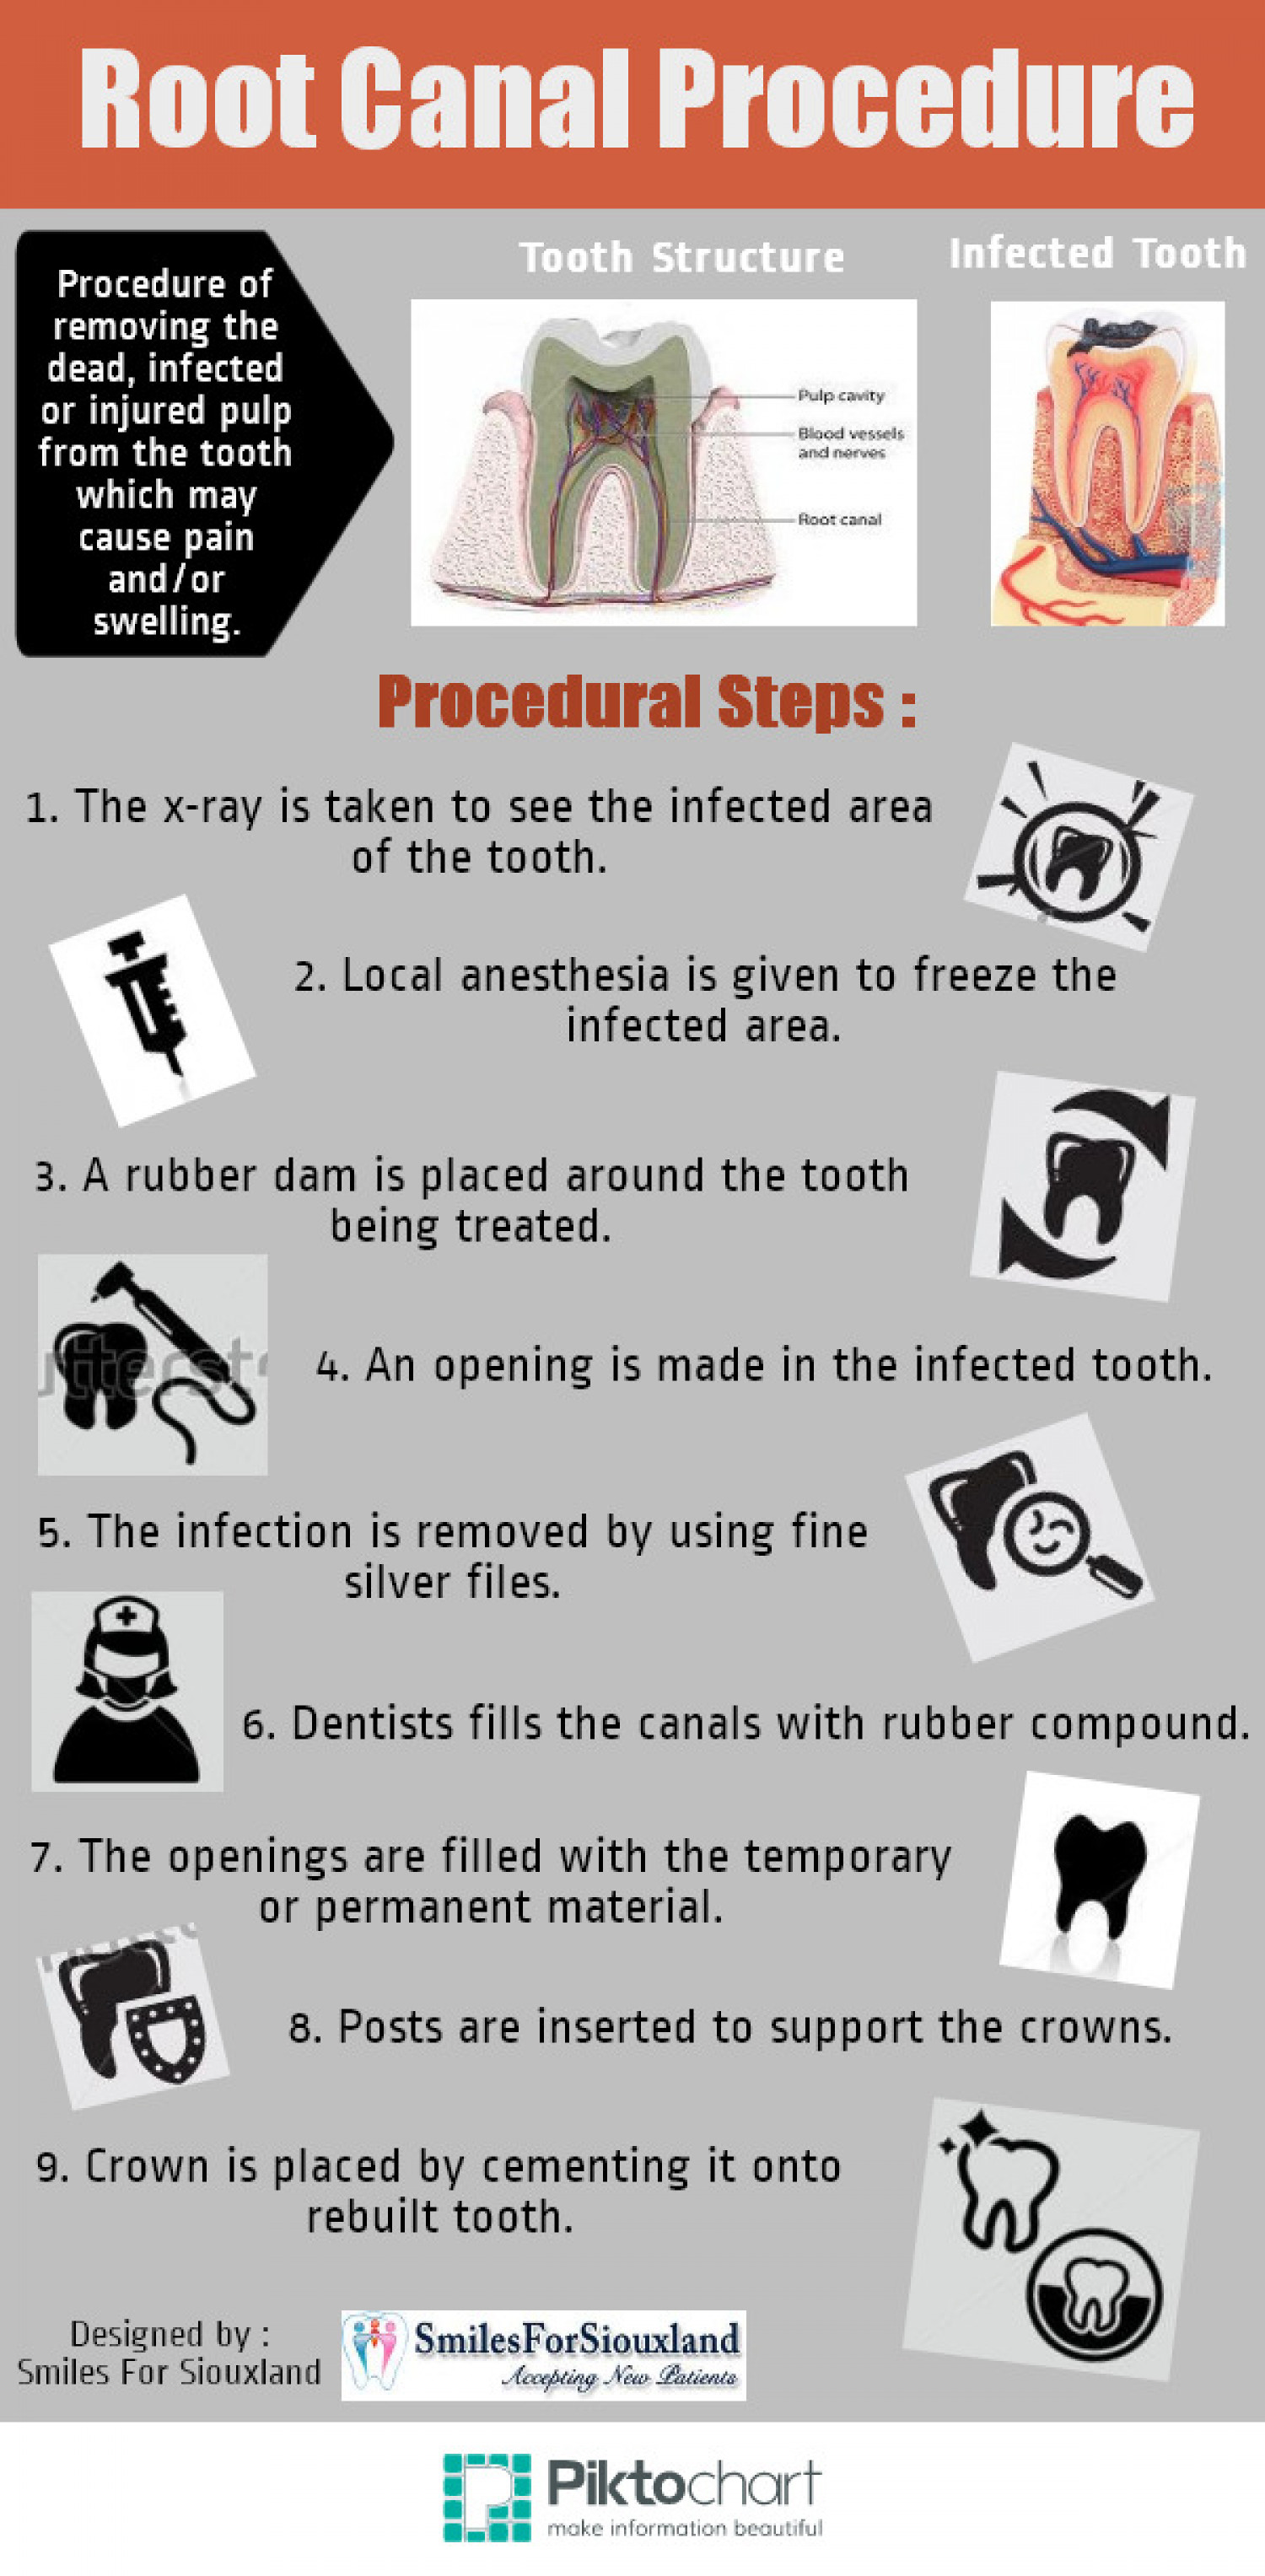 Root Canal Procedure Infographic